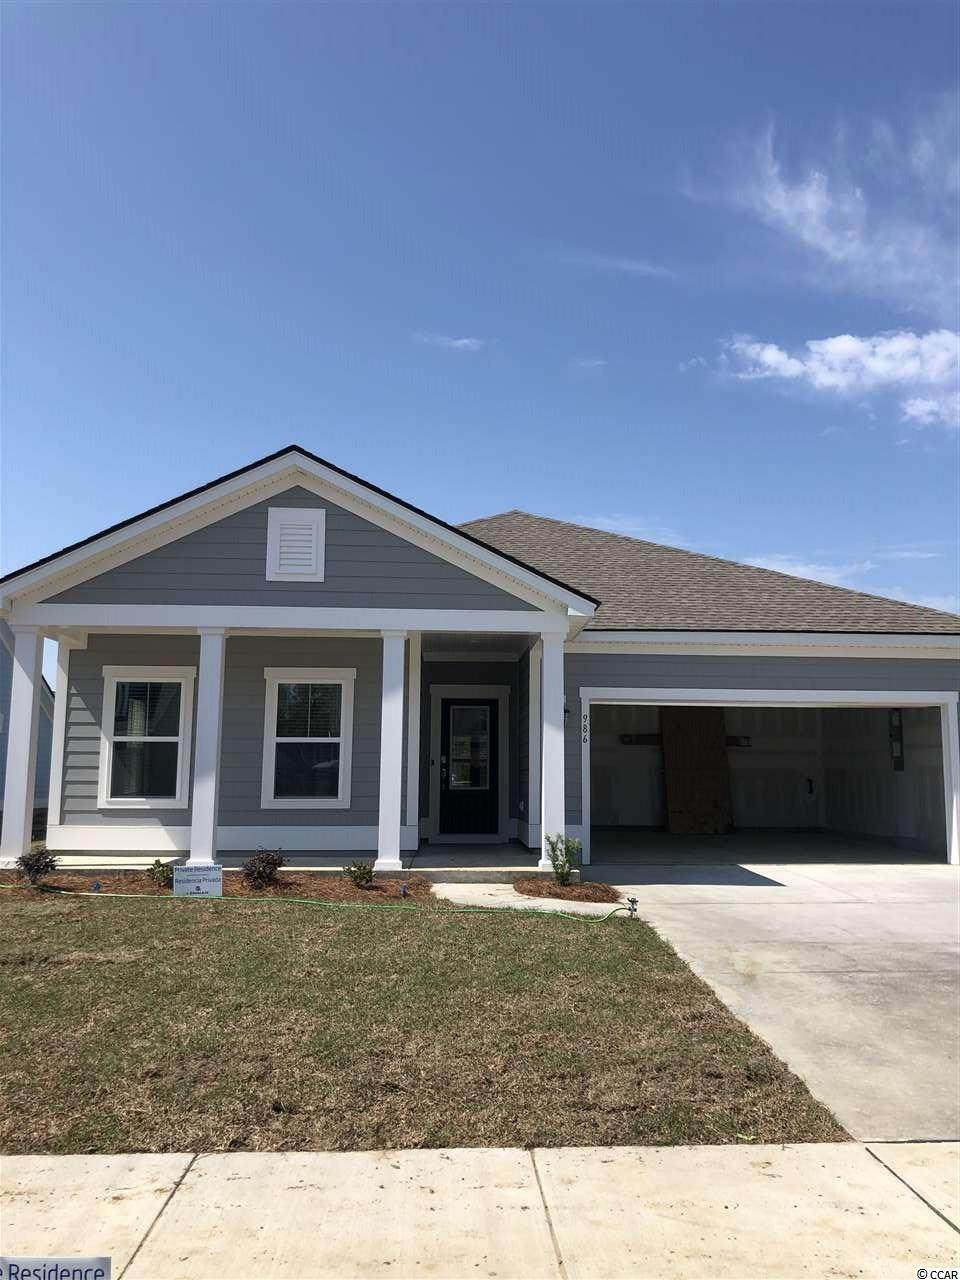 986 Mourning Dove Dr. - Photo 1